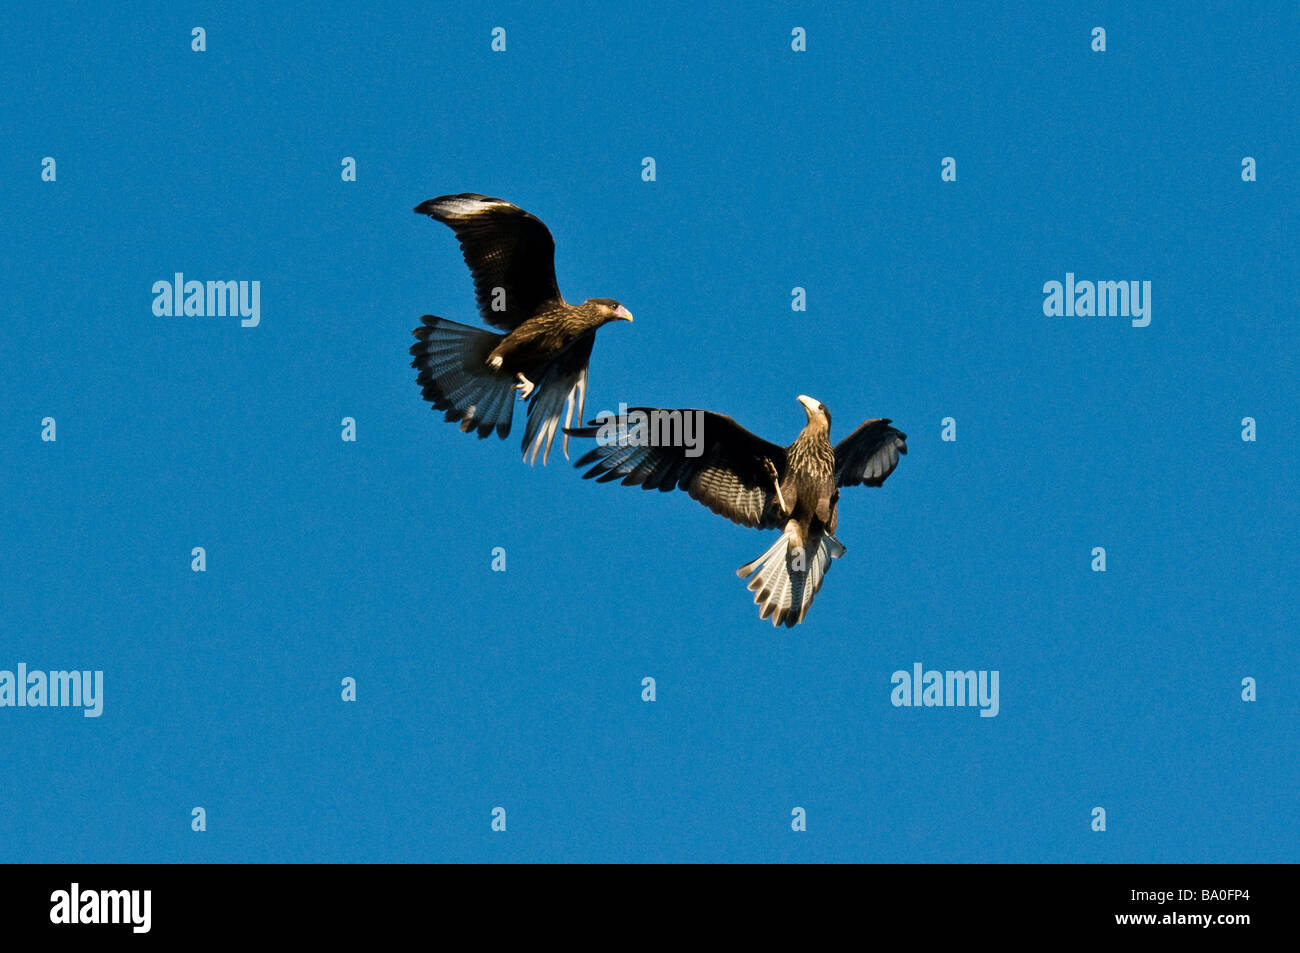 Figthing over a dead carcasse , Southern Crested Caracara, Llanquihue Lake, Chile - Stock Image